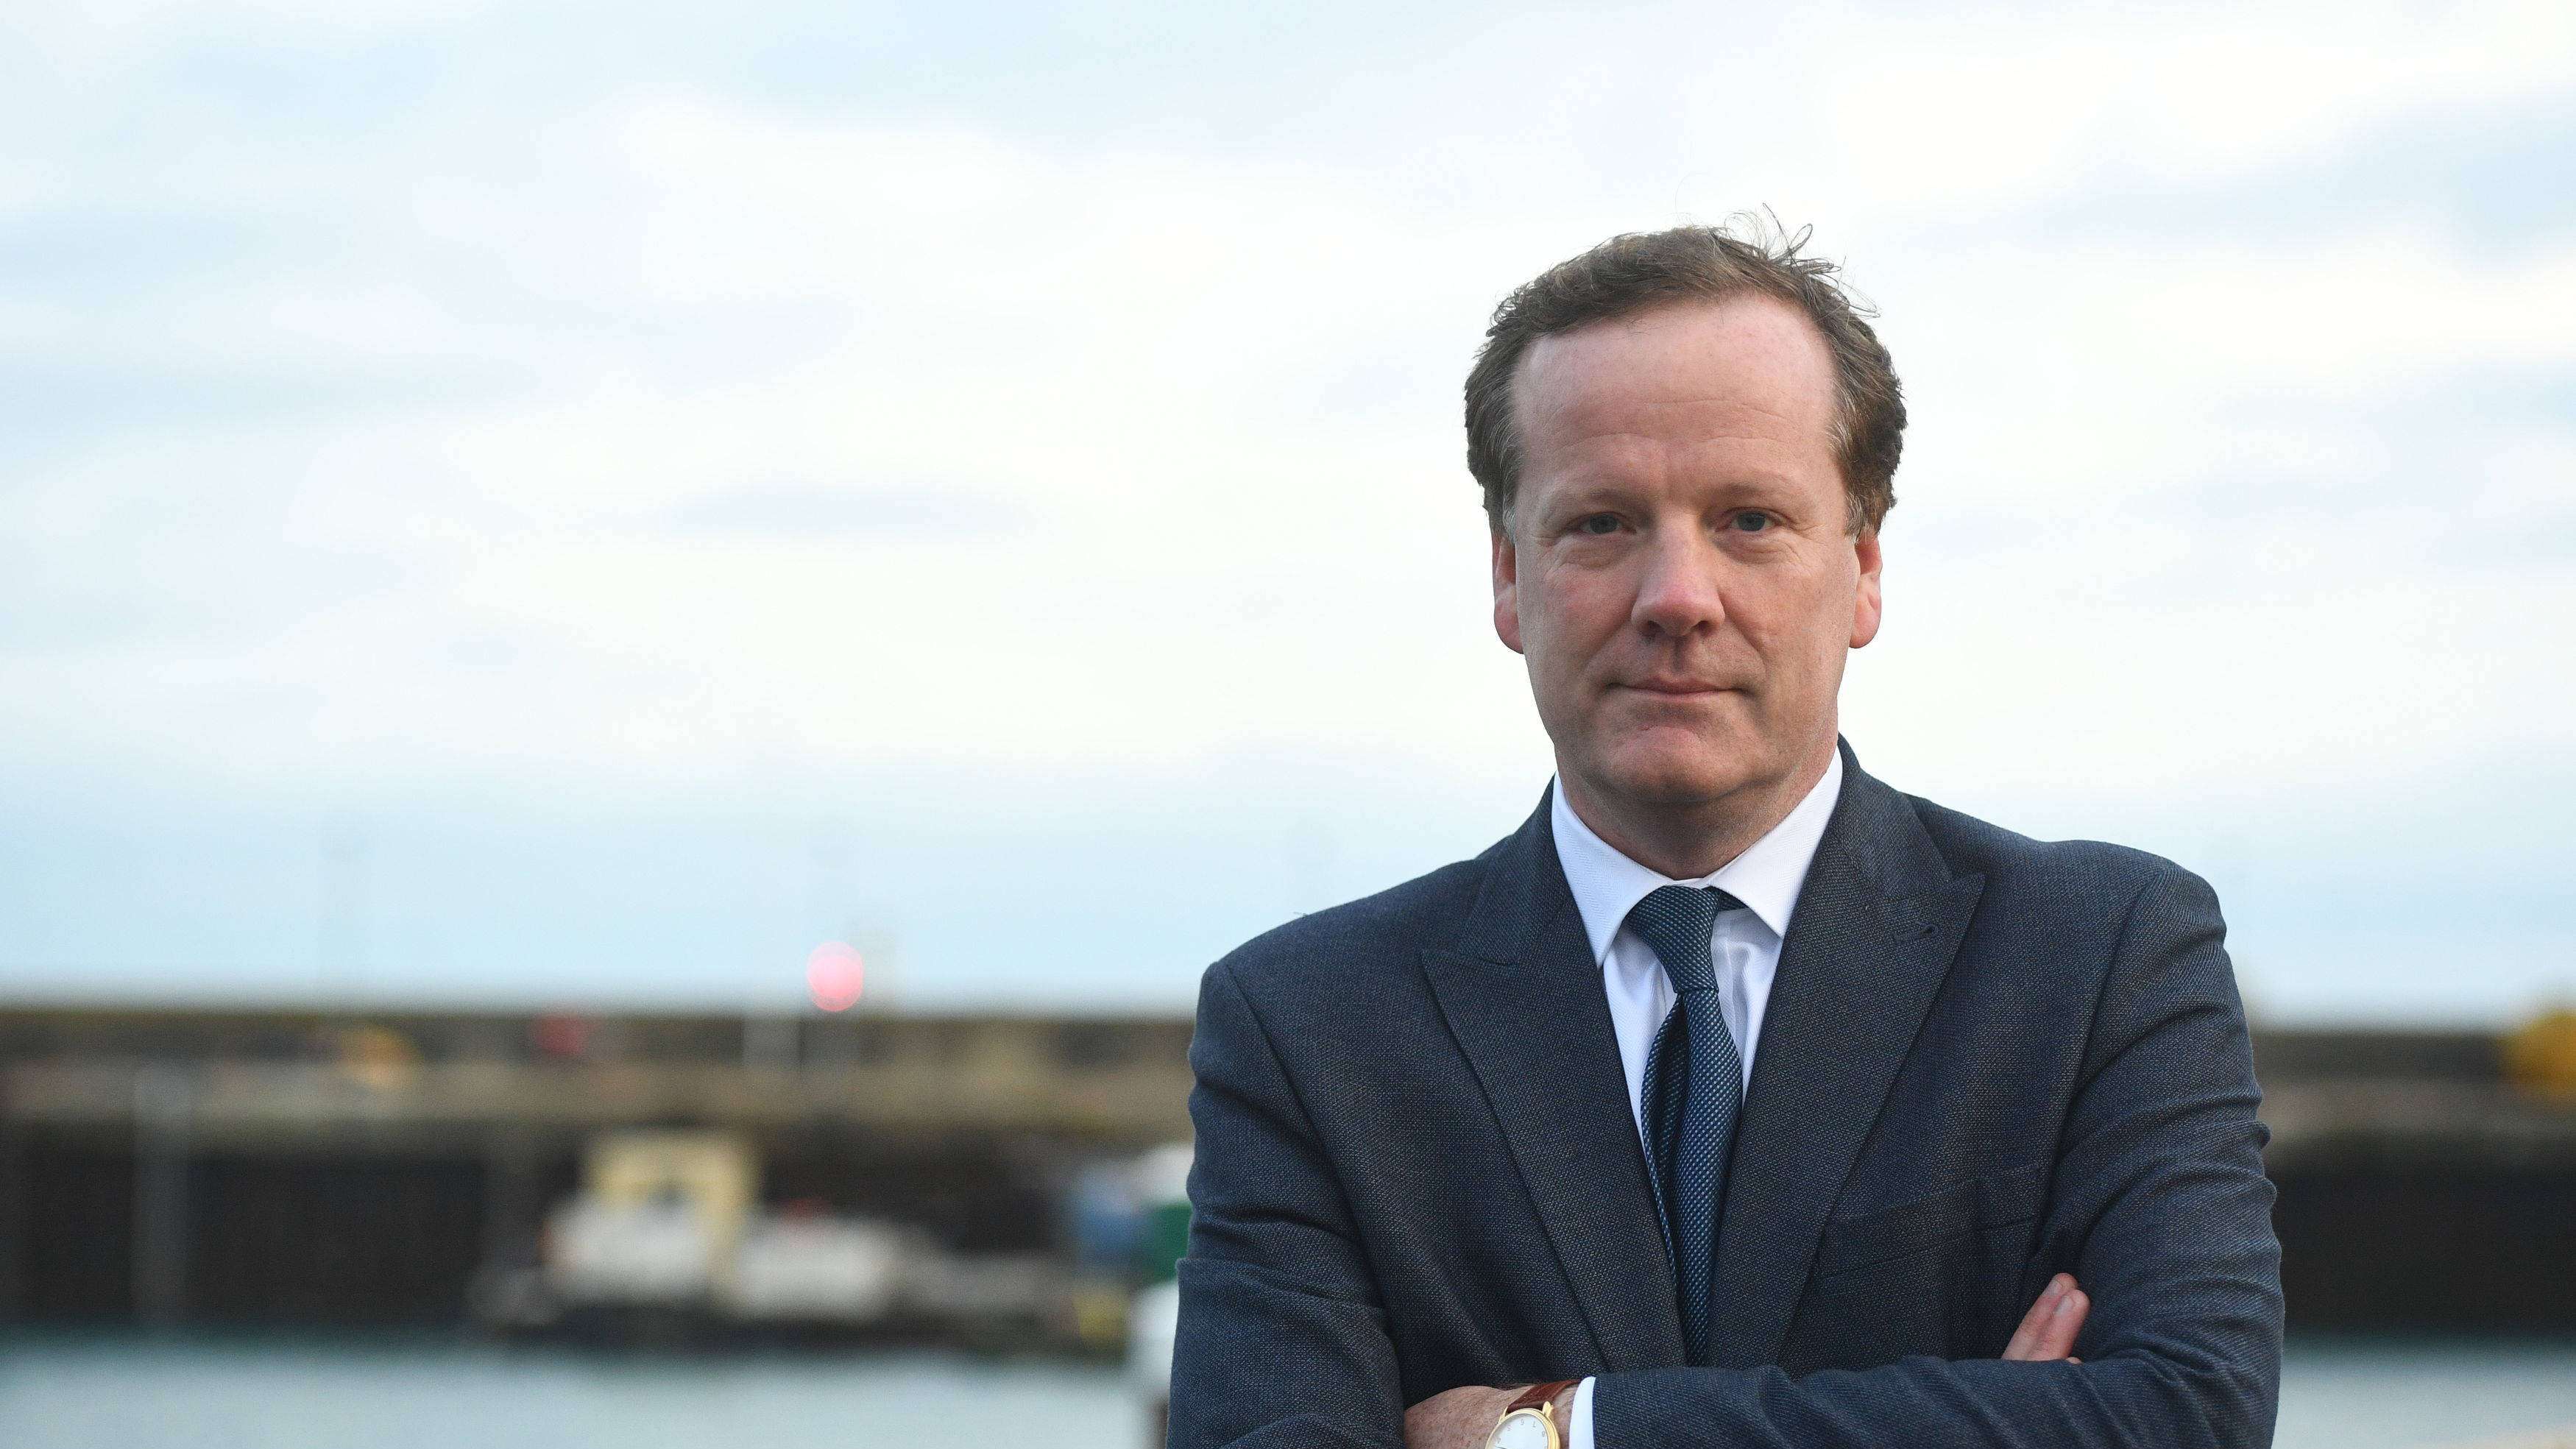 Conservative MP Charlie Elphicke Charged With Three Counts Of Sexual Assault